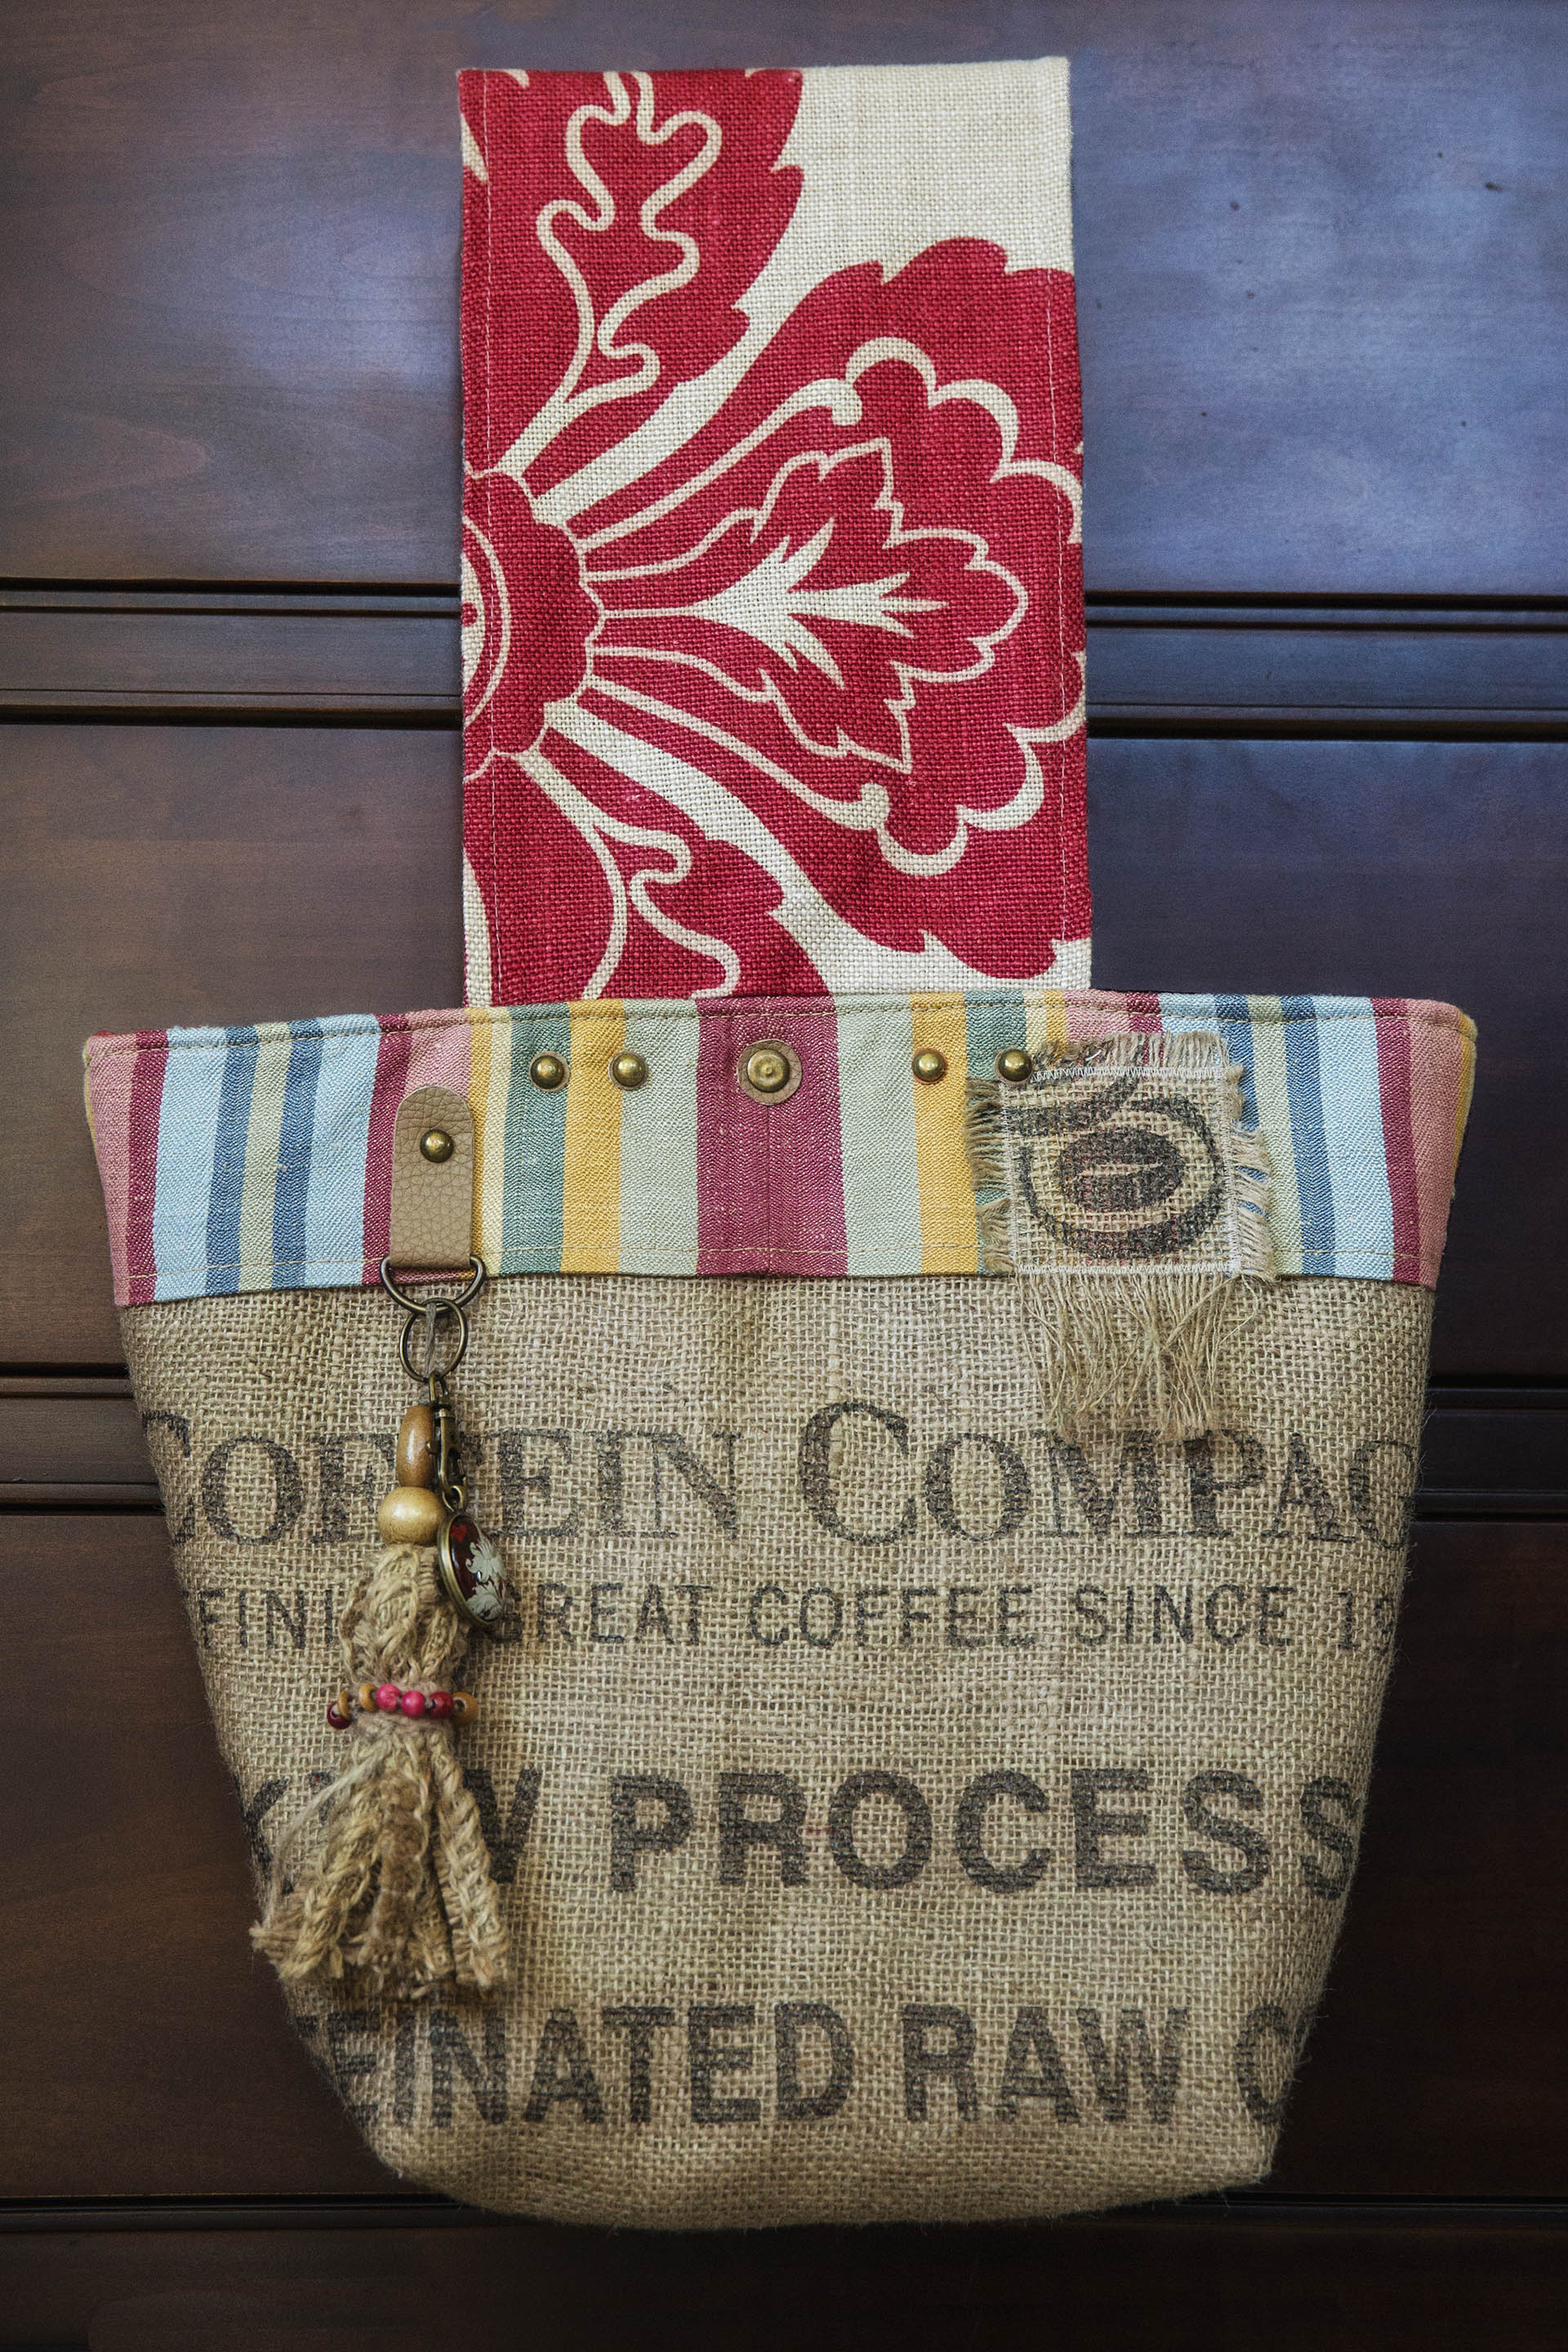 Maria Woods, make art life, tote, one-of-a-kind, handmade, coffee sack